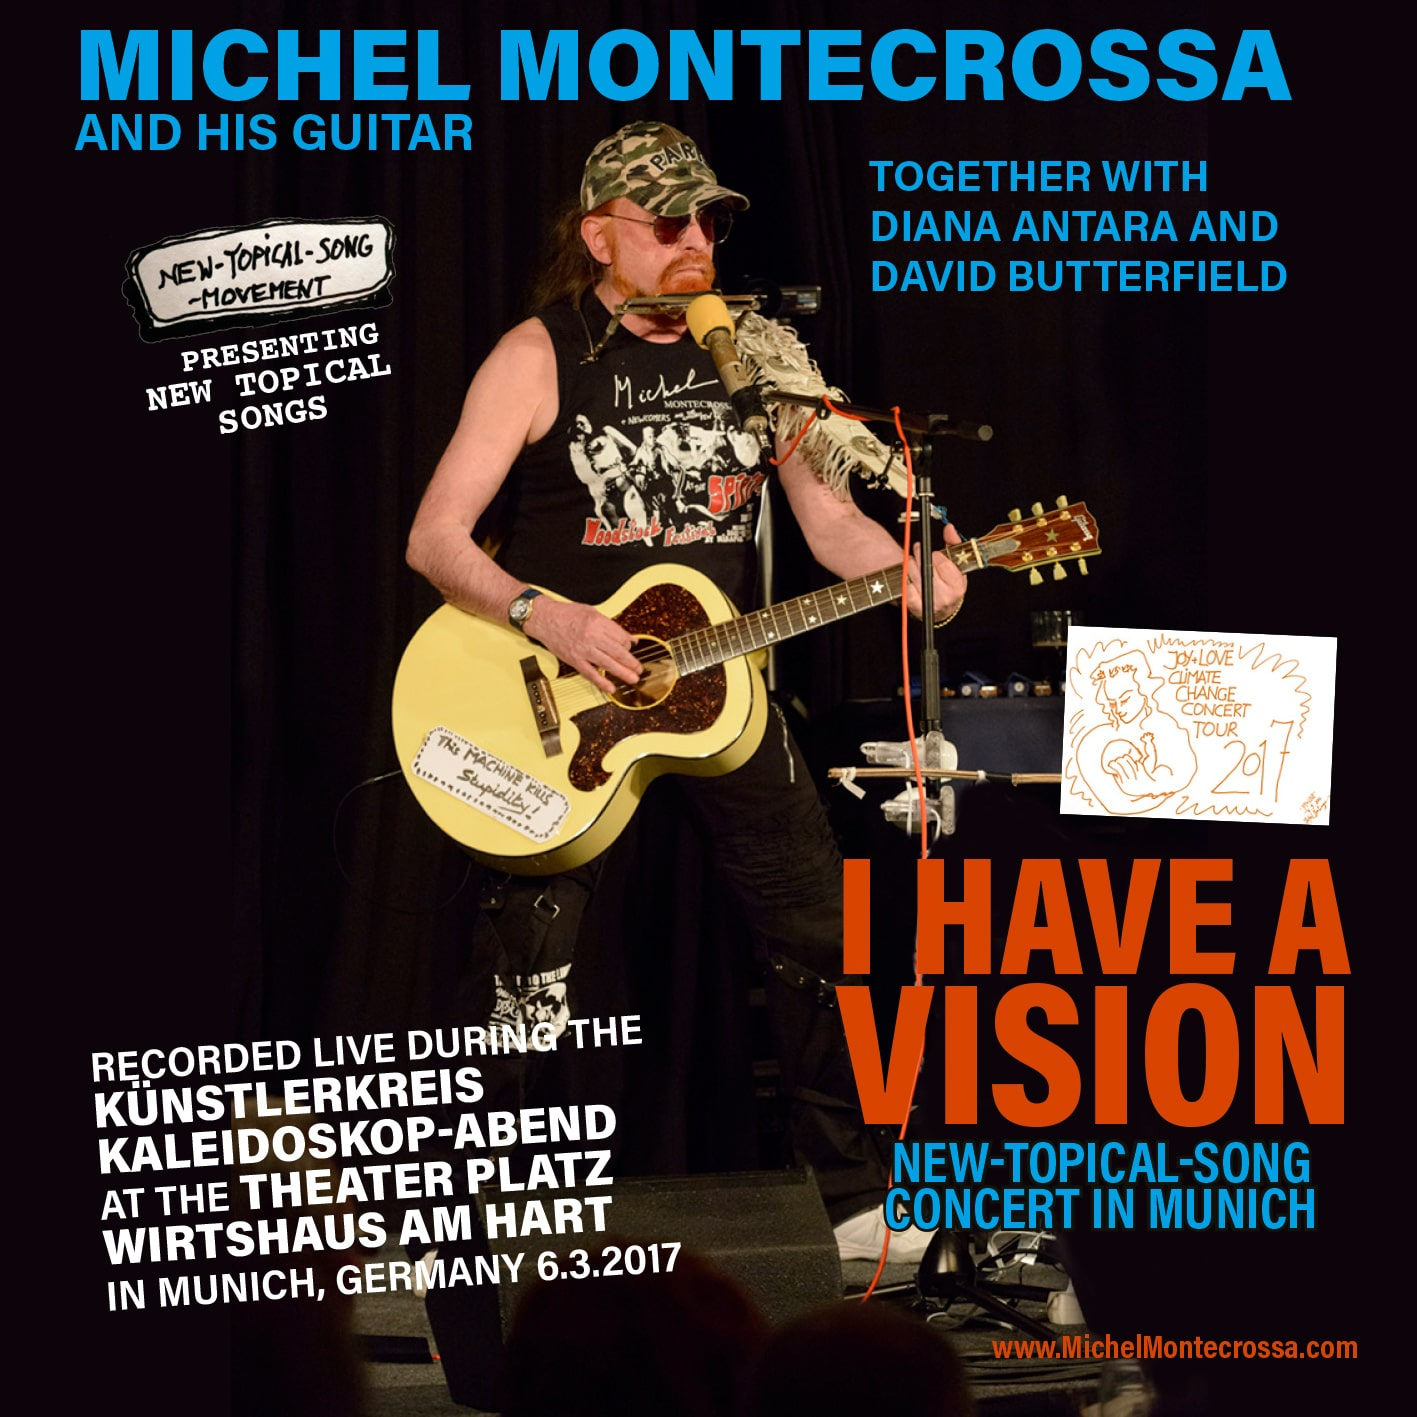 I Have A Vision New-Topical-Song Concert